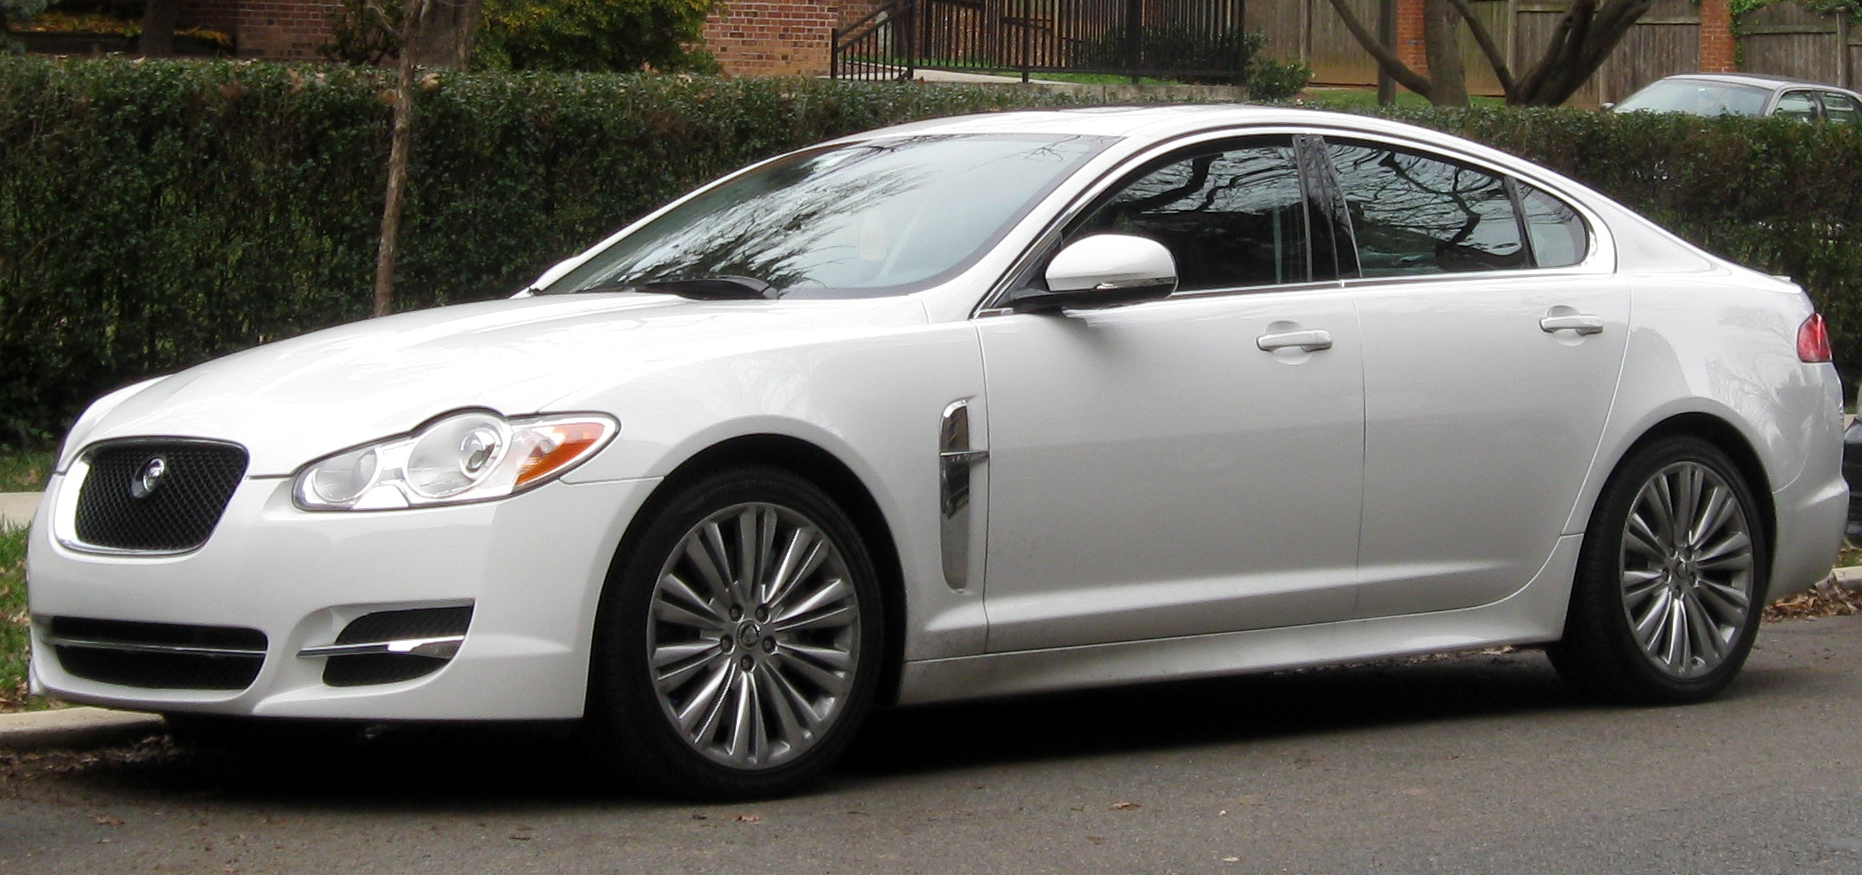 sale parts for automatic jaguar transmission oem xf xfr used at mile and catalog